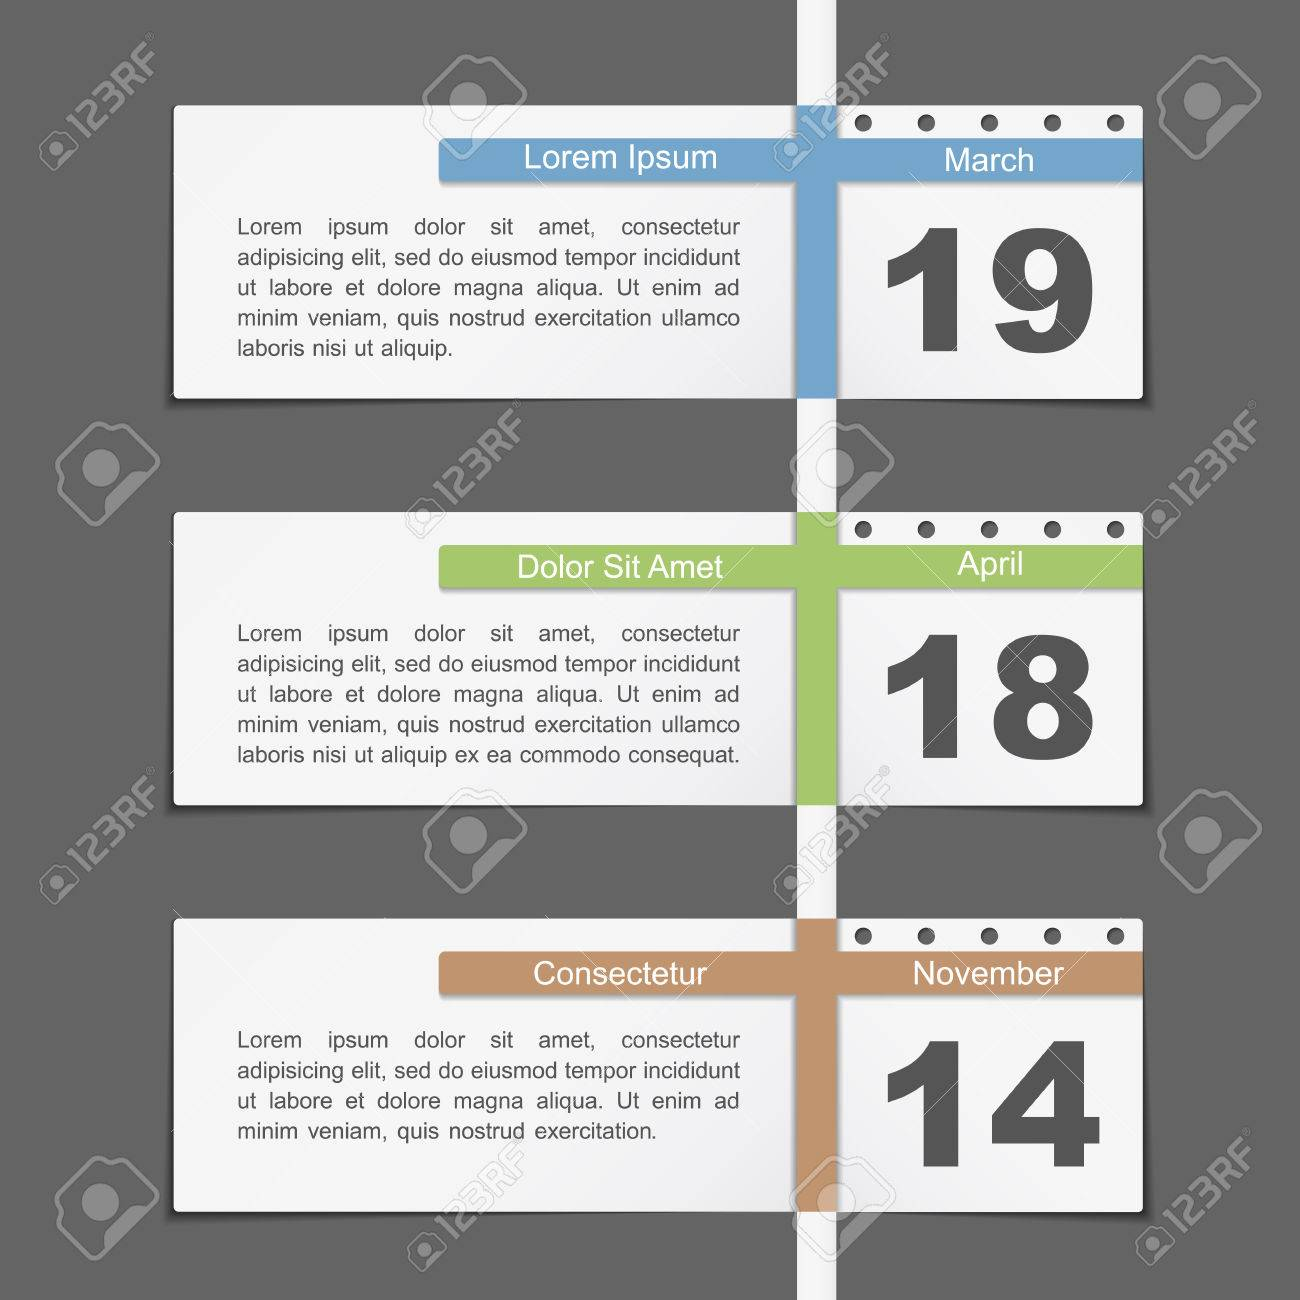 Timeline Design Template With Calendar Dates Royalty Free Cliparts ...